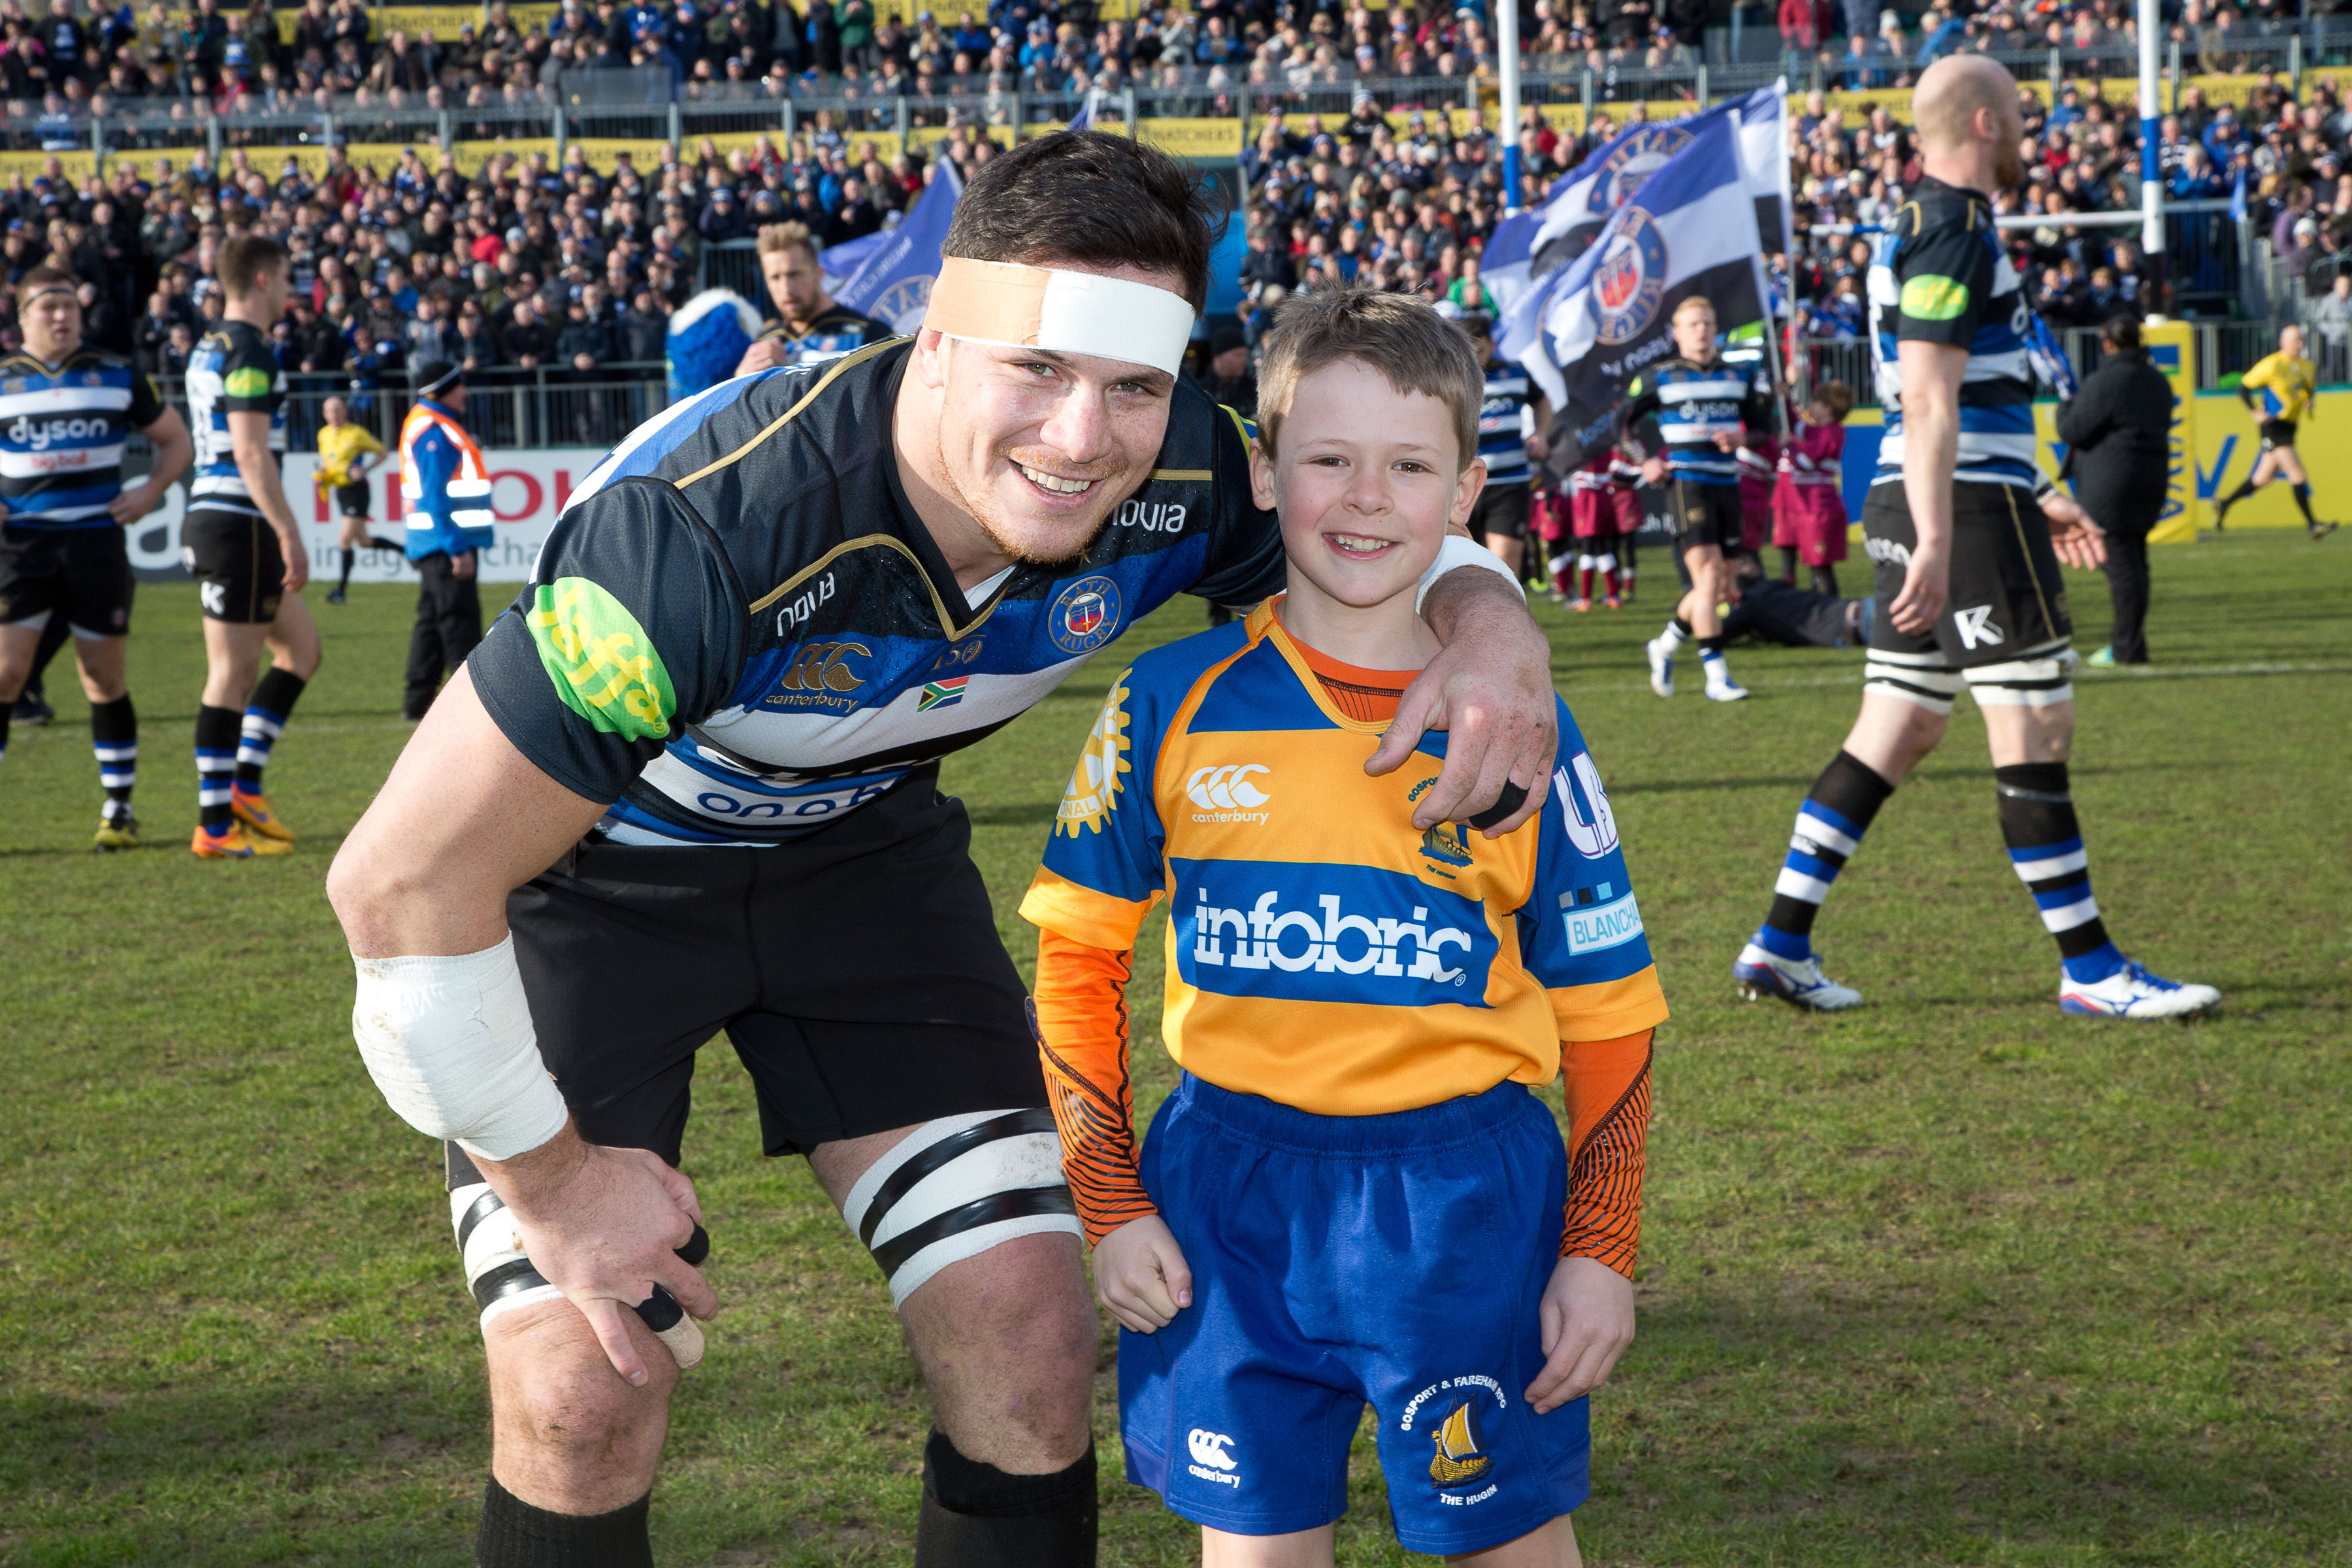 Partners with Bath Rugby